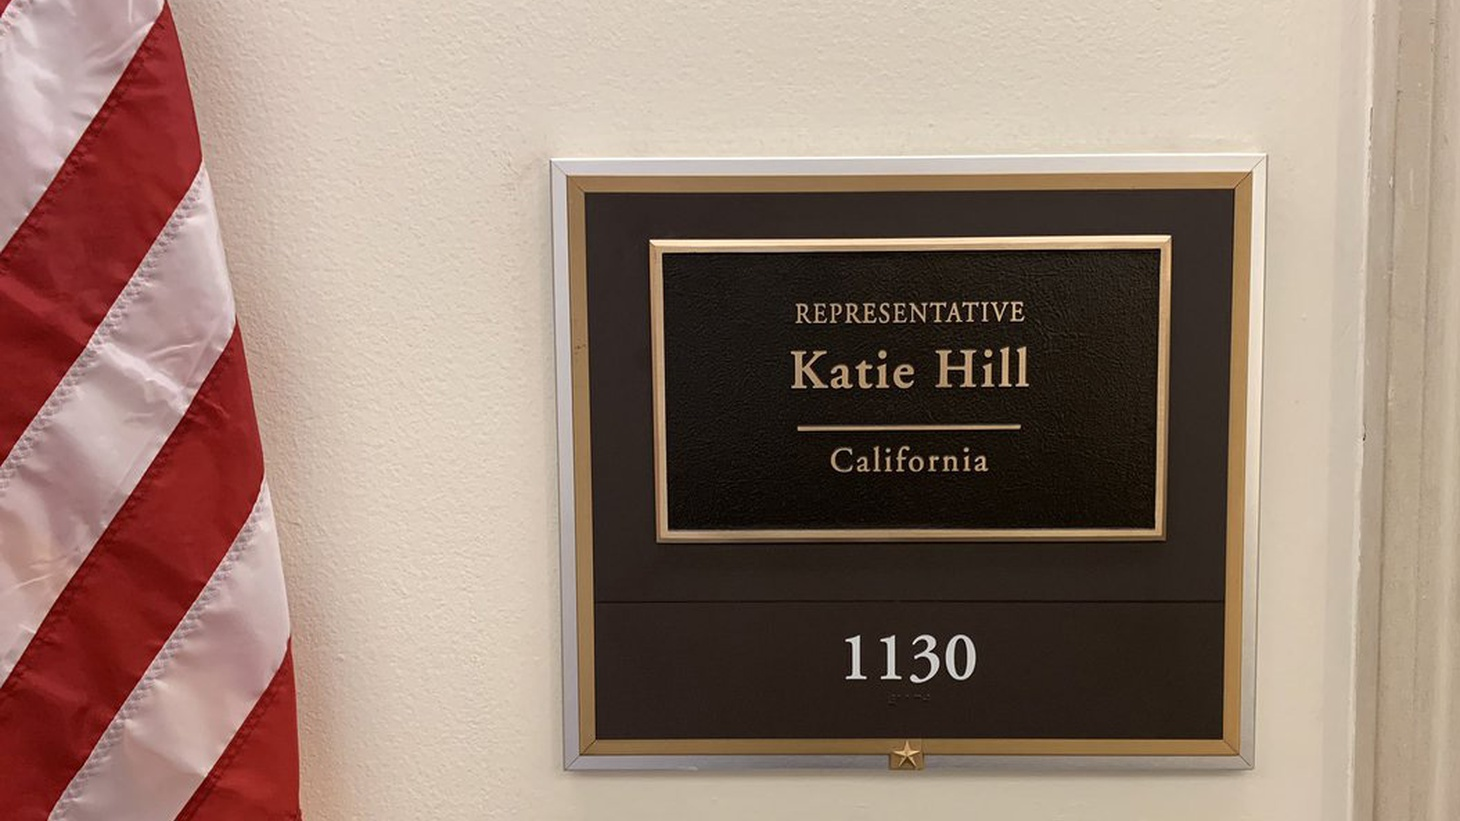 Katie Hill's office in Longworth Hall.